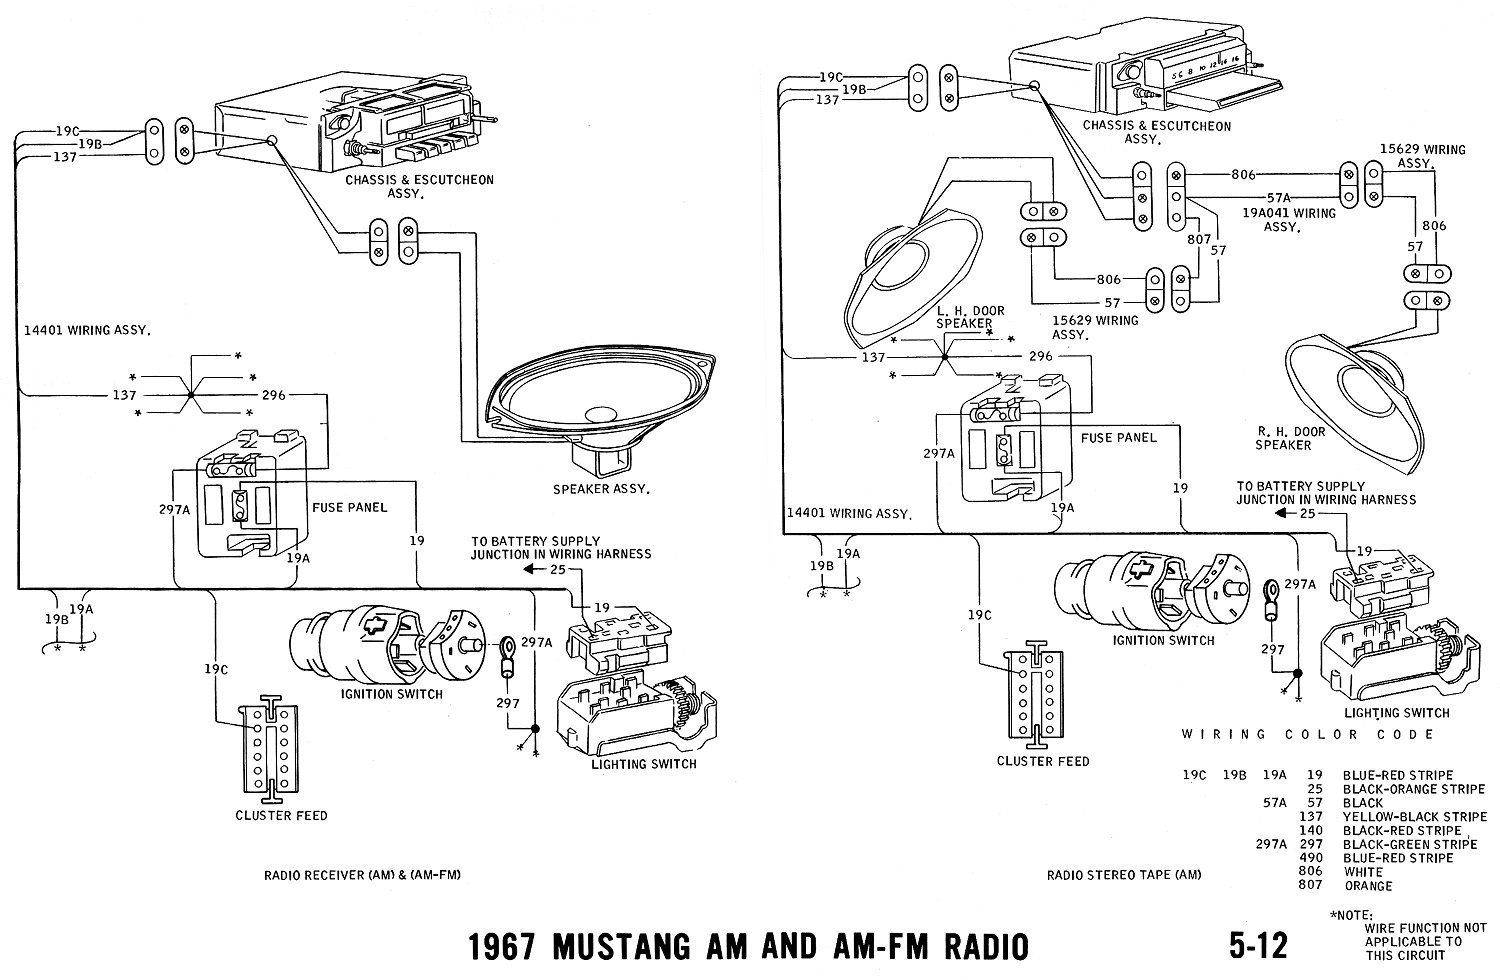 Mustang 67 Wiring Diagram Change Your Idea With 1965 Ford Alternator 1967 And Vacuum Diagrams Average Joe Restoration Rh Averagejoerestoration Com Dash